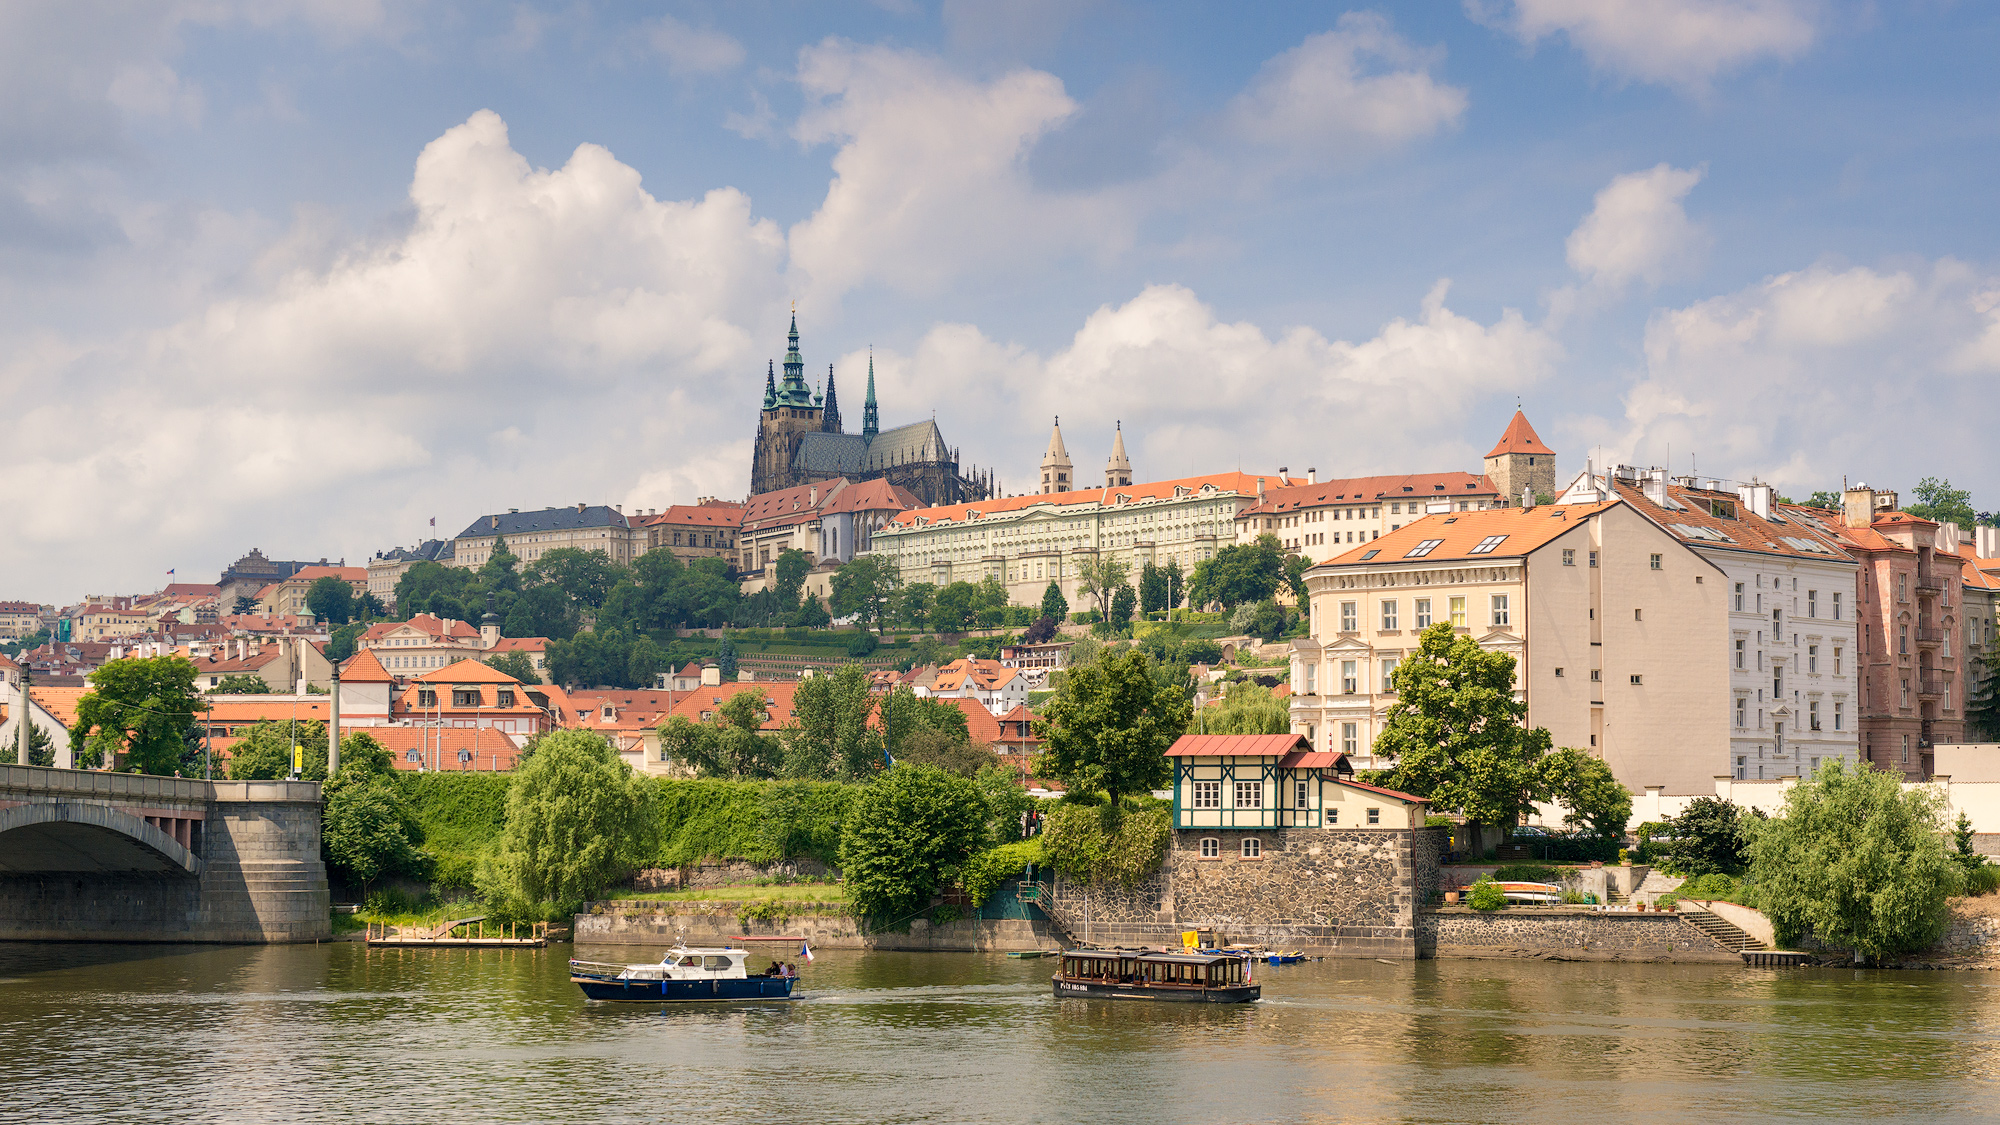 Looking across the Vltava at St. Vitus' Cathedral on the hill.